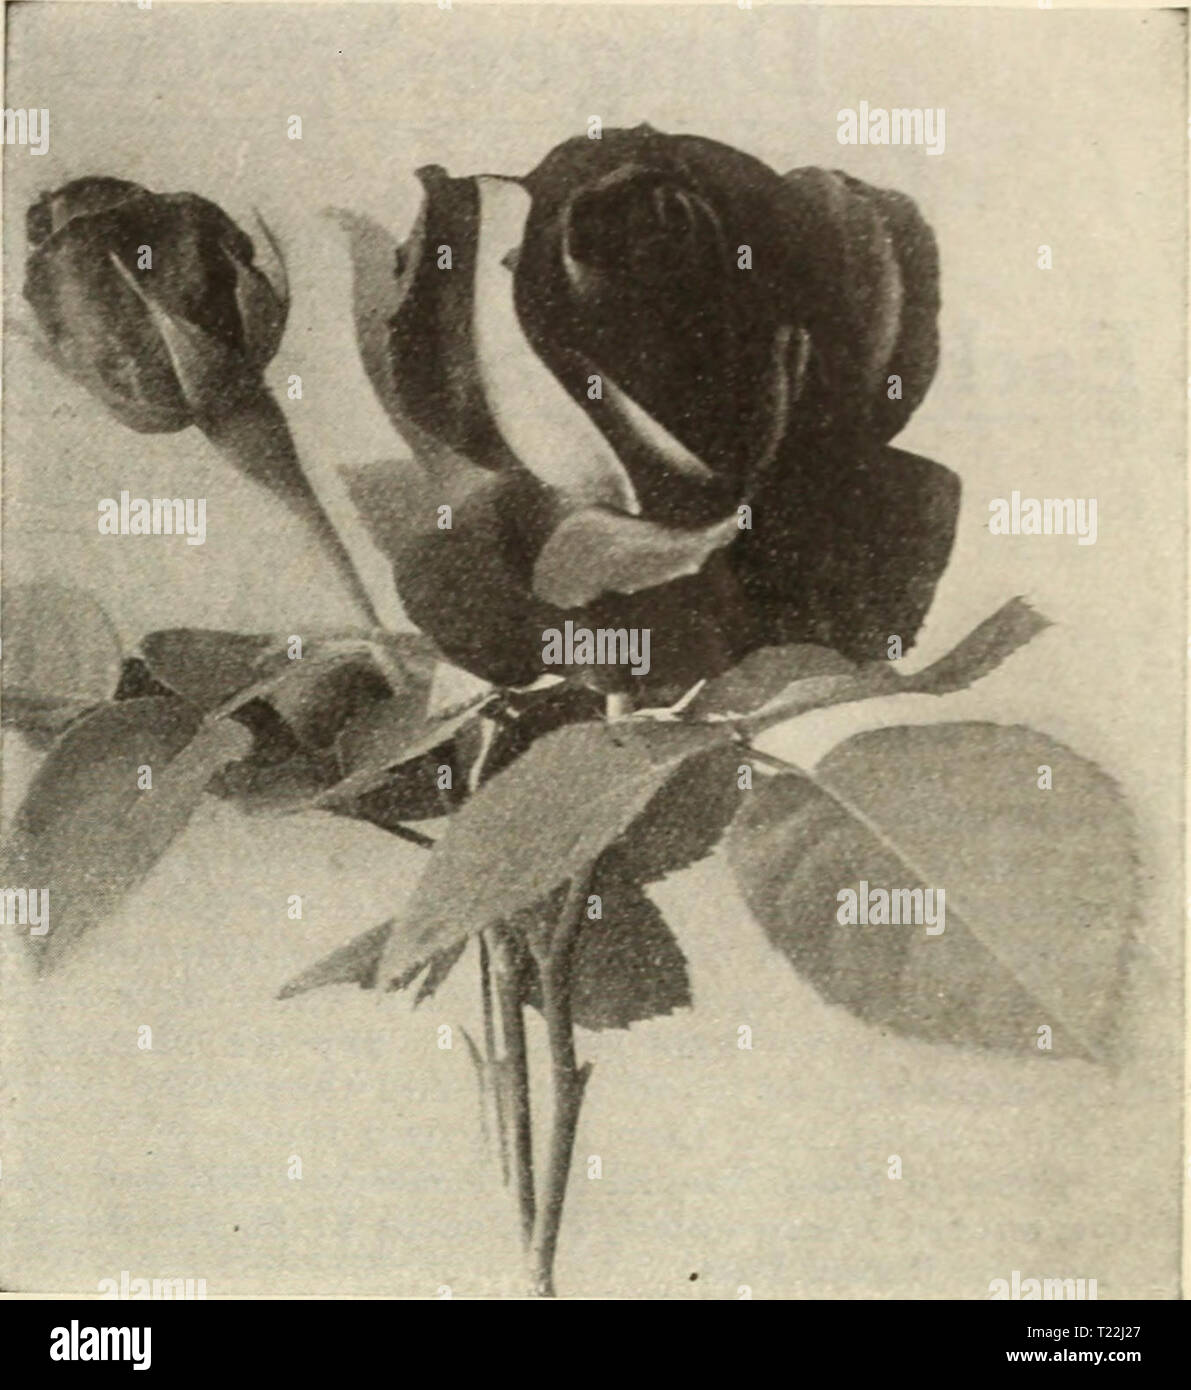 archive image from page 16 of dingee guide to rose culture dingee guide to rose culture for more than 60 years an authority dingeeguidetoros19ding 6 year 1915 mary countess of ilchester francis scott key mary countess of ilchester a strong vigorous hybrid tea color warm crimson carmine a color almost indescribable flowers produced on long upright stems of im mense size with large smooth circular petals the foliage is attractive and handsome a deep green very highly scented strong young plants on their own roots 25c each two year old plants 60c each natalia bottner ne T22J27